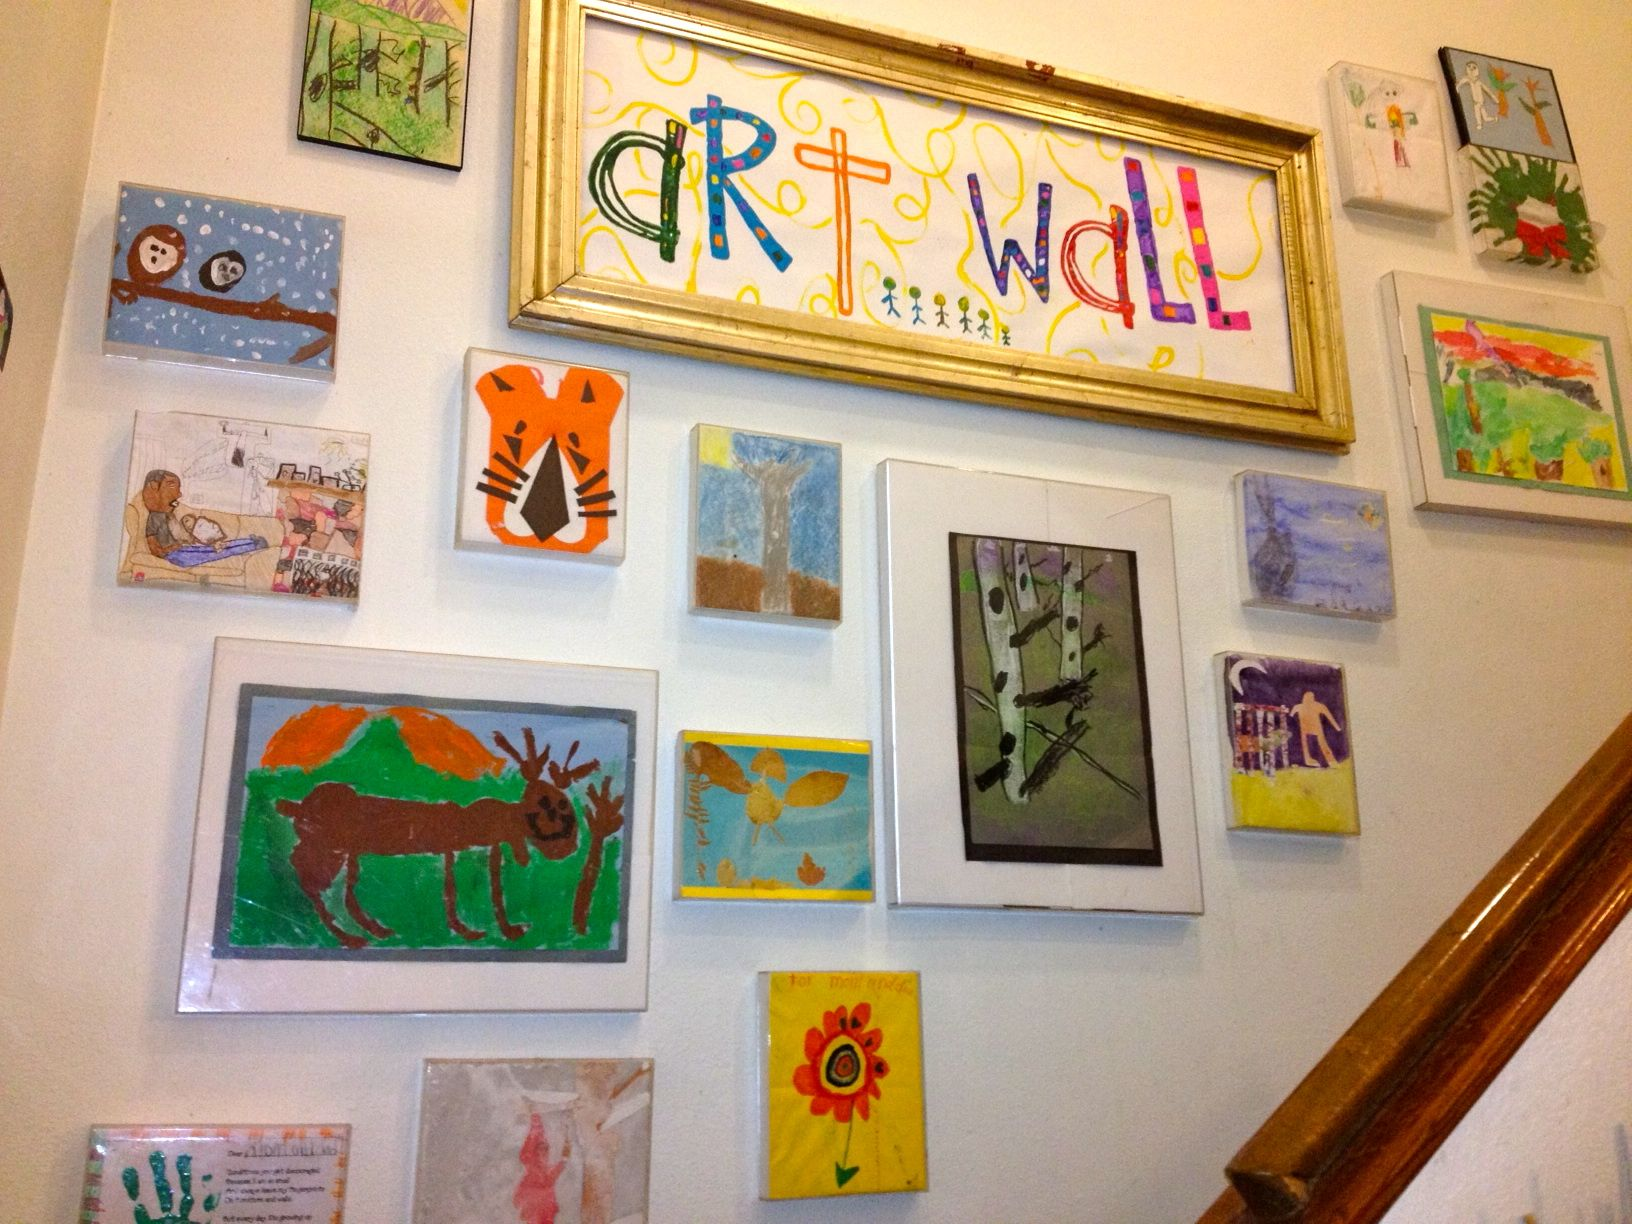 Cheap Wall Art Ideas Of Kids Art Wall Using Cheap Plastic Frames That We Used To